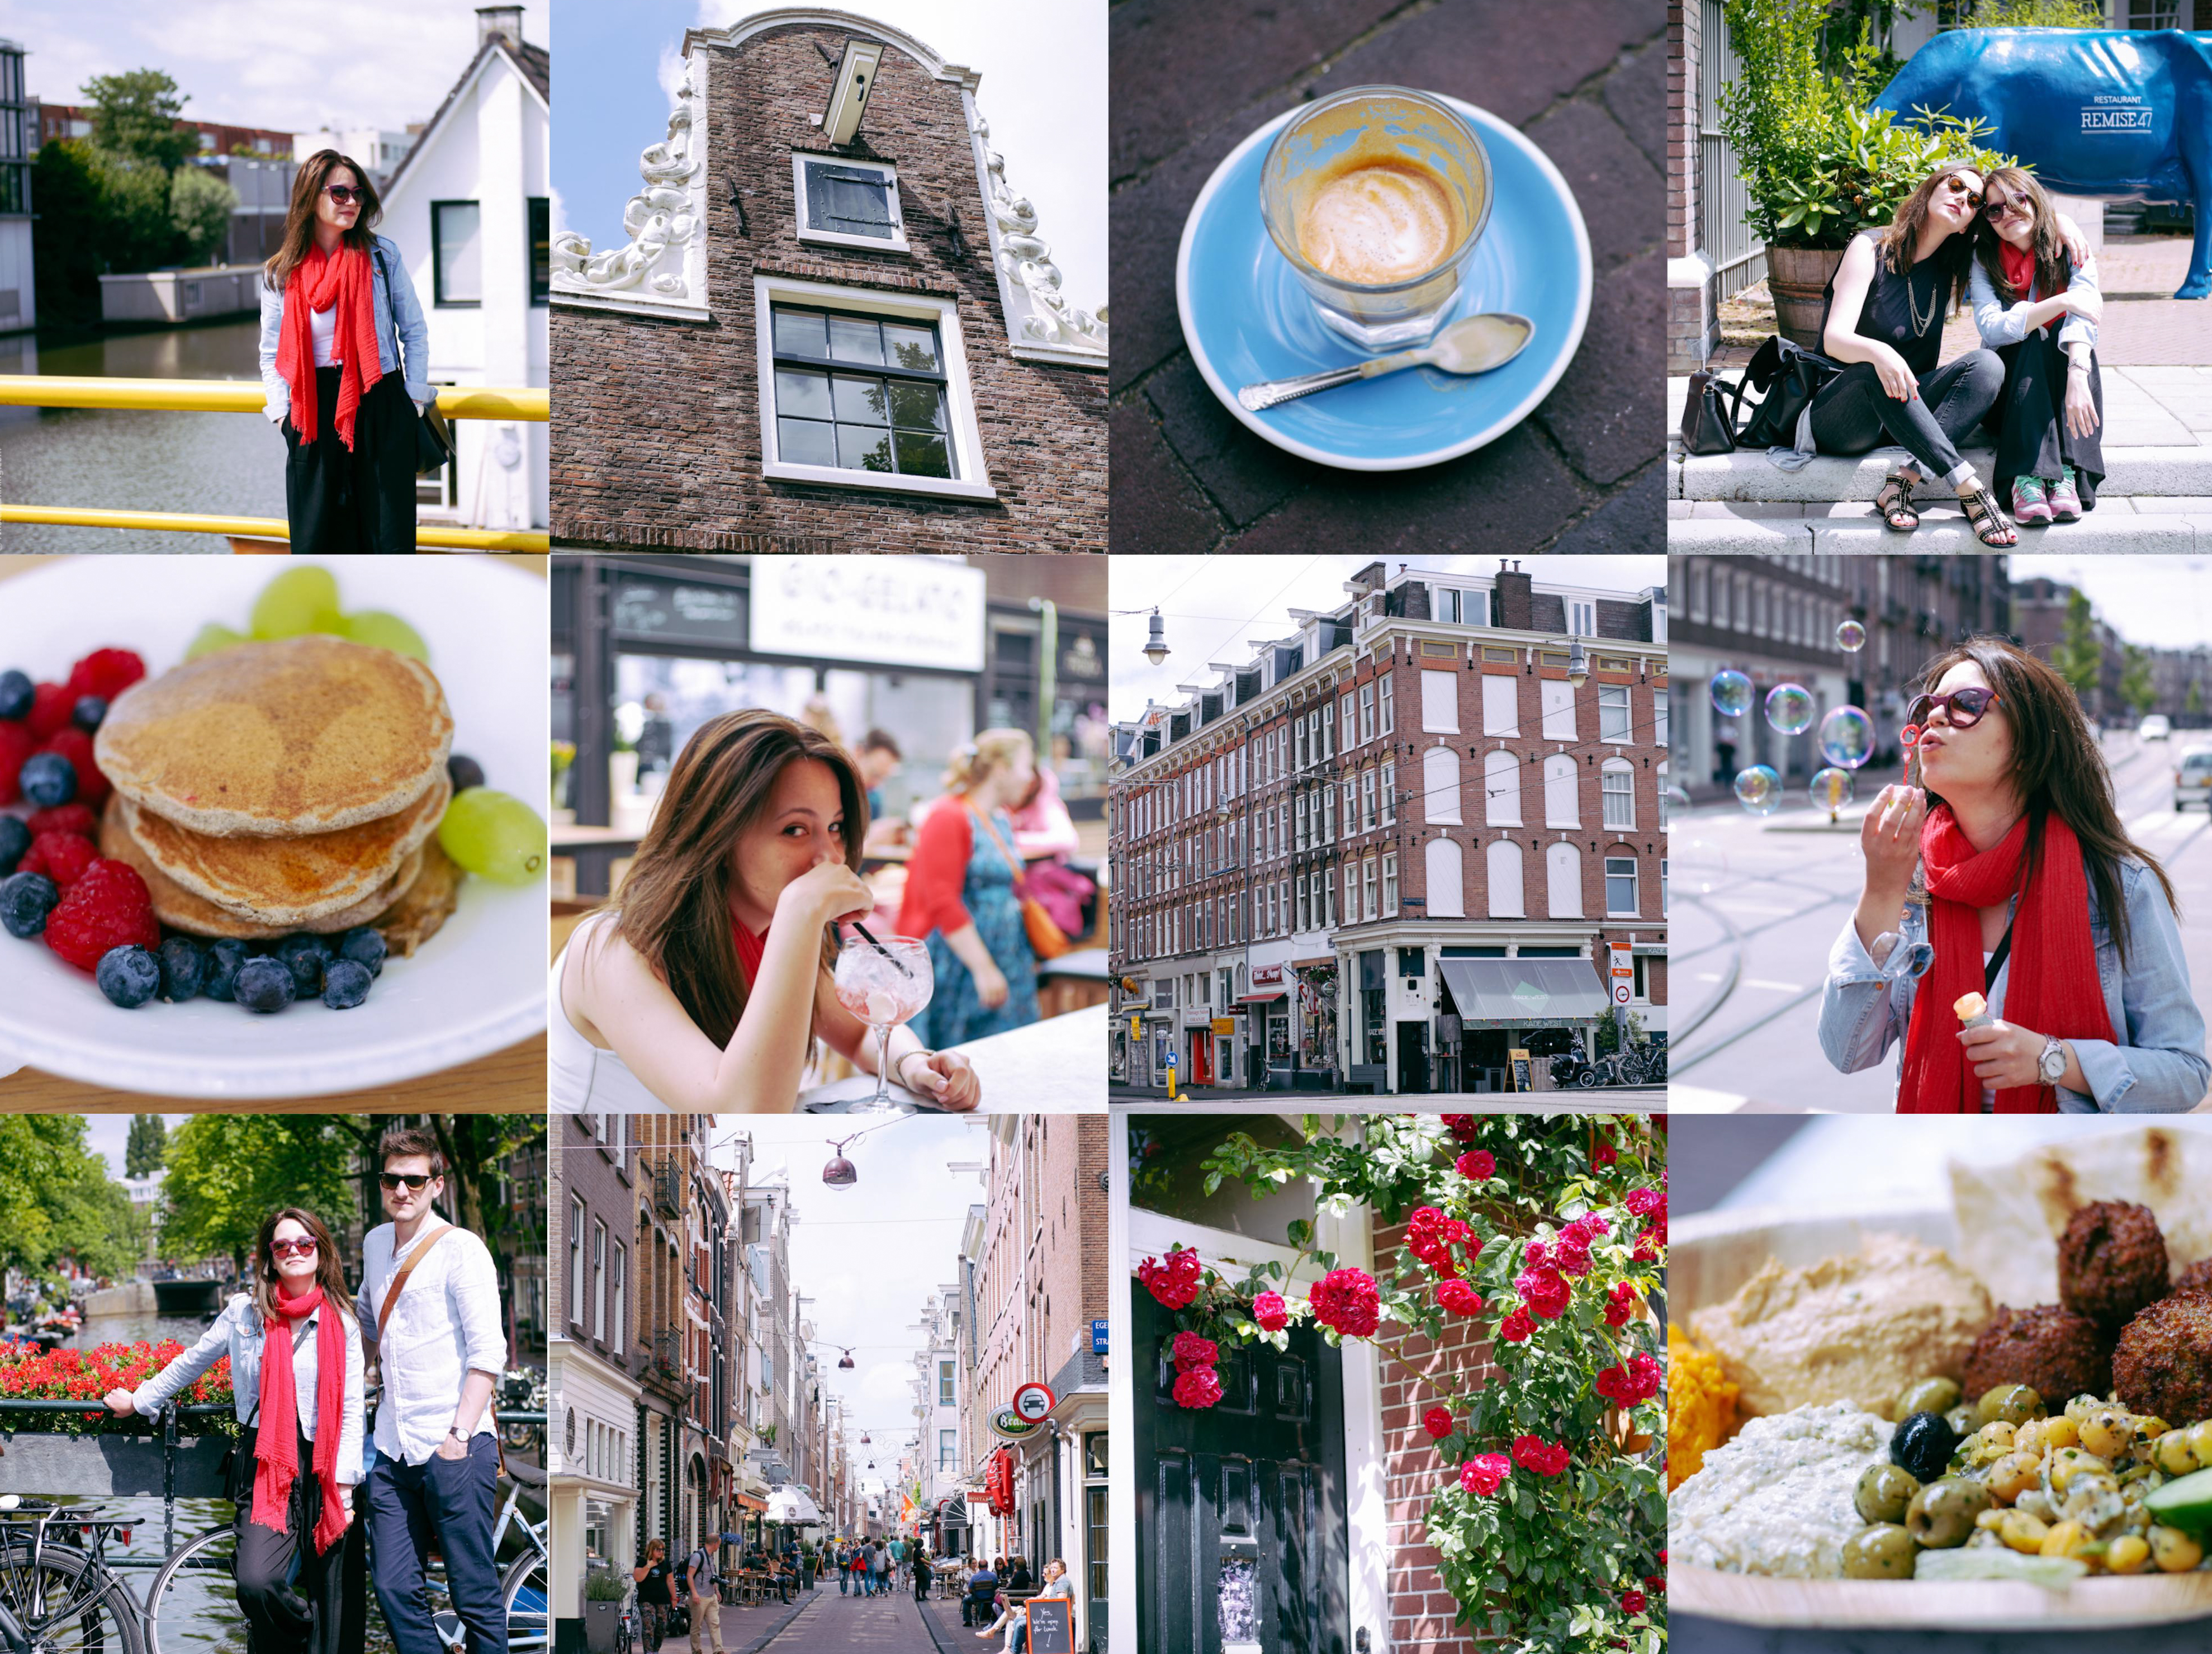 2016 JUNE Amsterdam Mitsy Day2 collage-1.jpg